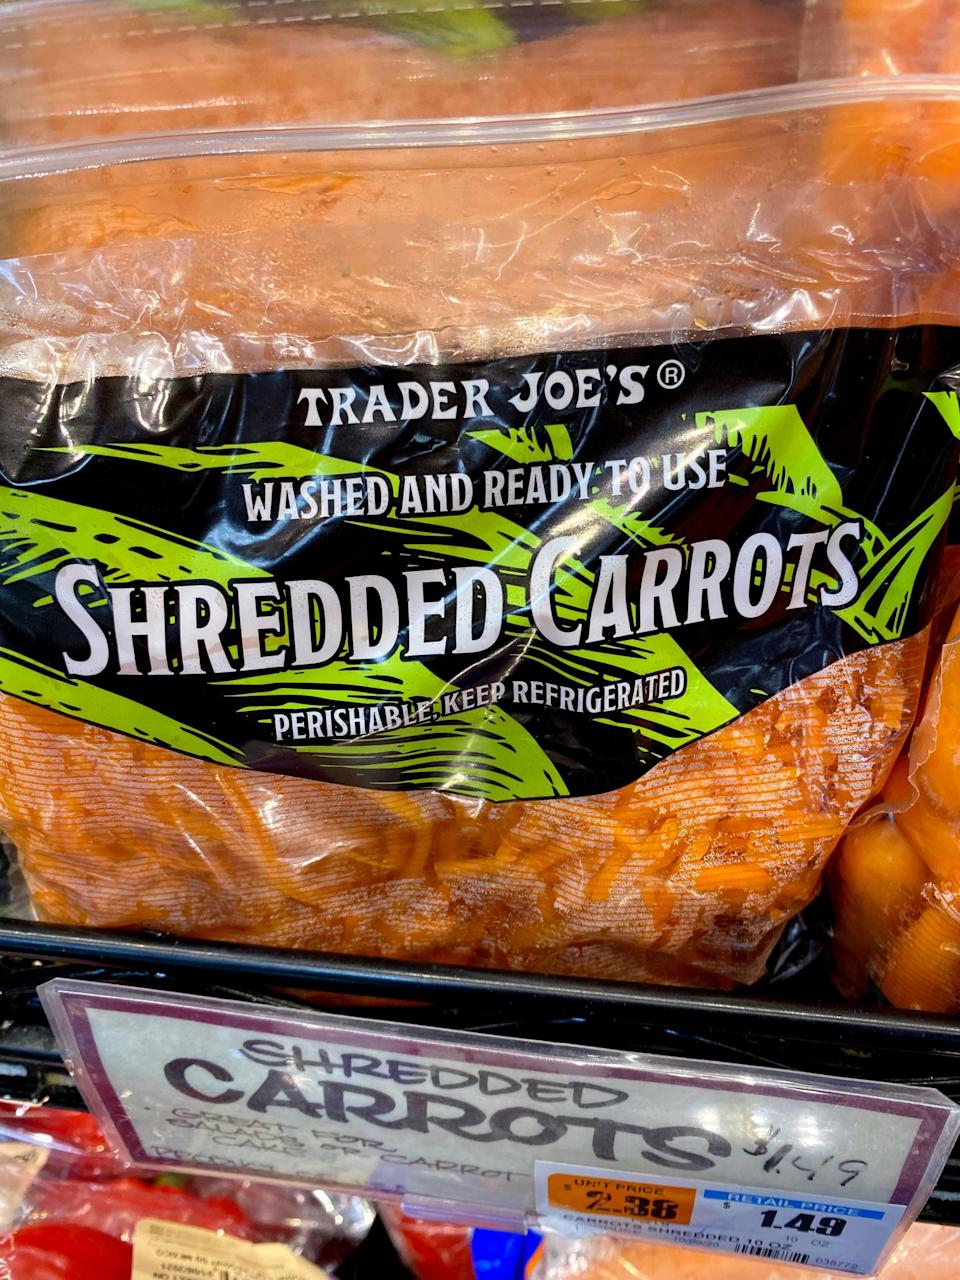 """<p>Sure, I could shred my own carrots, but this makes it so easy! I usually add them to salads or to quinoa while cooking, but one of my favorite ways to use these shredded carrots is to add a cup to my rolled oats while they're cooking on the stove for <a href=""""https://www.popsugar.com/fitness/Carrot-Cake-Oatmeal-40544790"""" class=""""link rapid-noclick-resp"""" rel=""""nofollow noopener"""" target=""""_blank"""" data-ylk=""""slk:carrot cake oatmeal"""">carrot cake oatmeal</a>!</p>"""